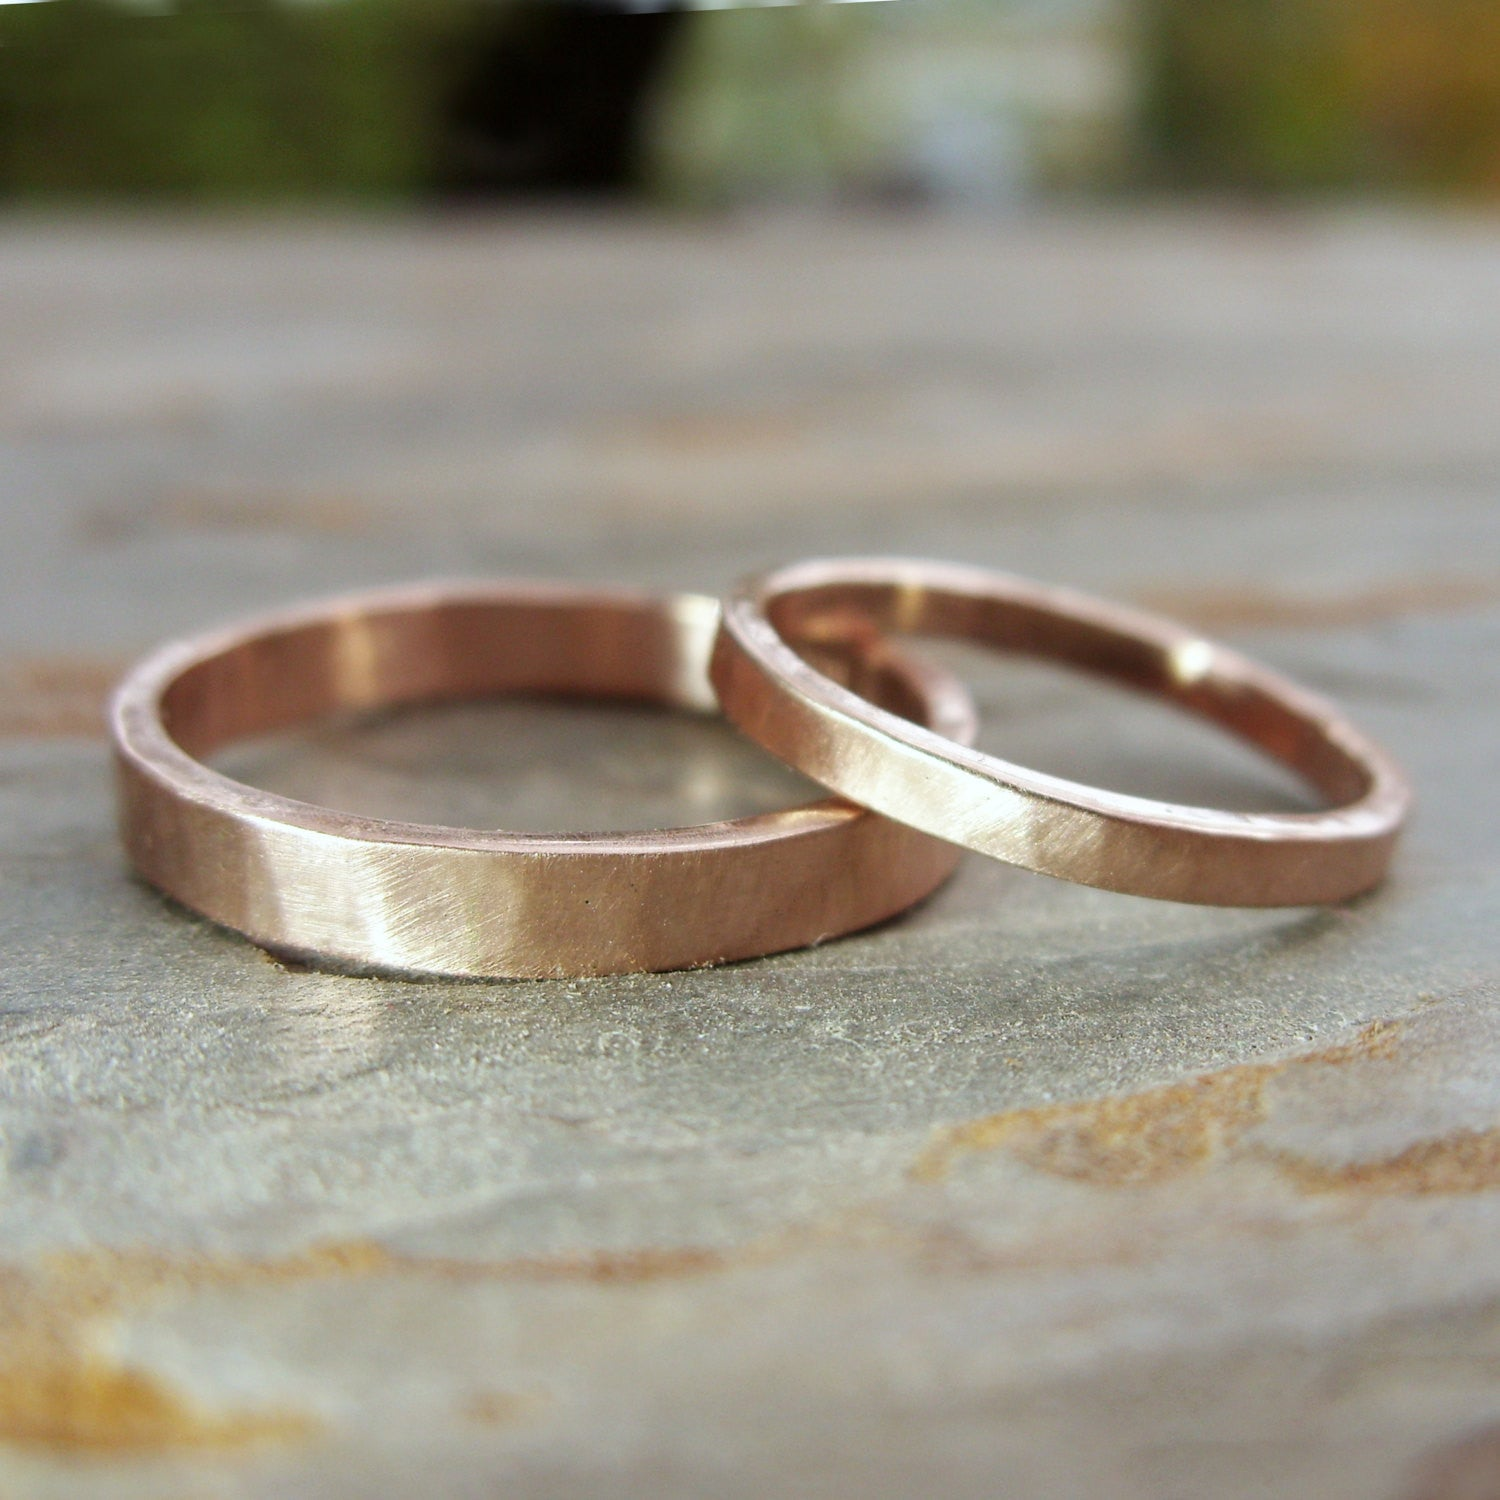 bands shape of wedding vernring thin vern diamond point rose products gold band v contour choice